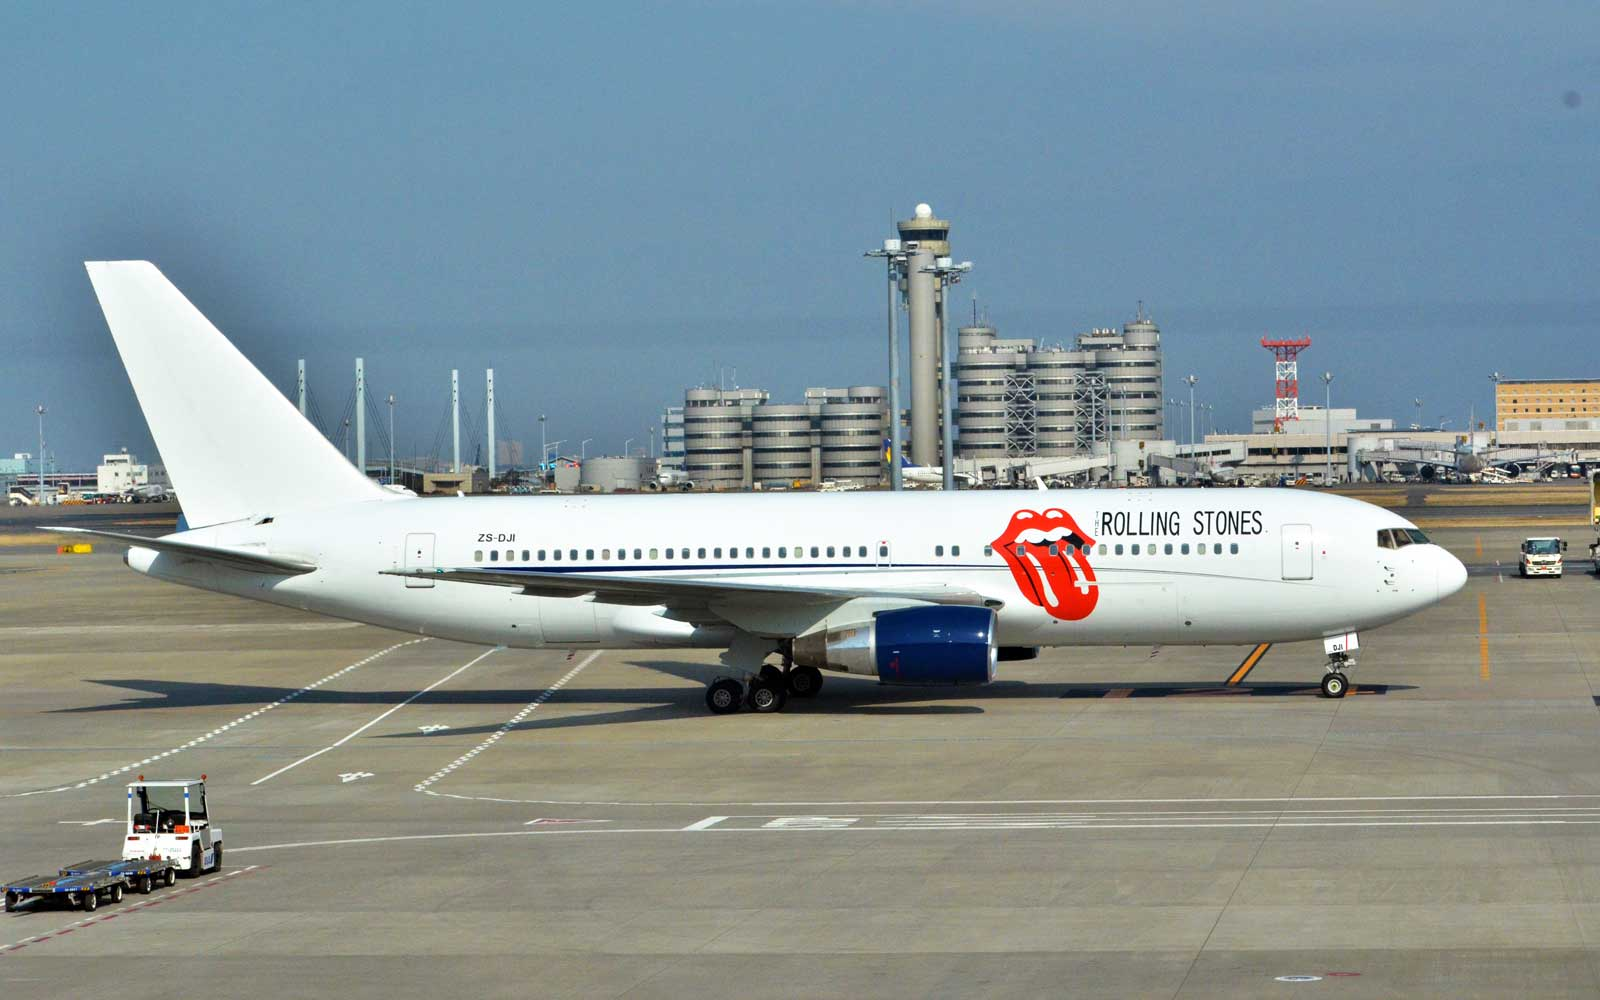 The Rolling Stones Have a Personalized Tour Plane That's Pure Rock 'n' Roll